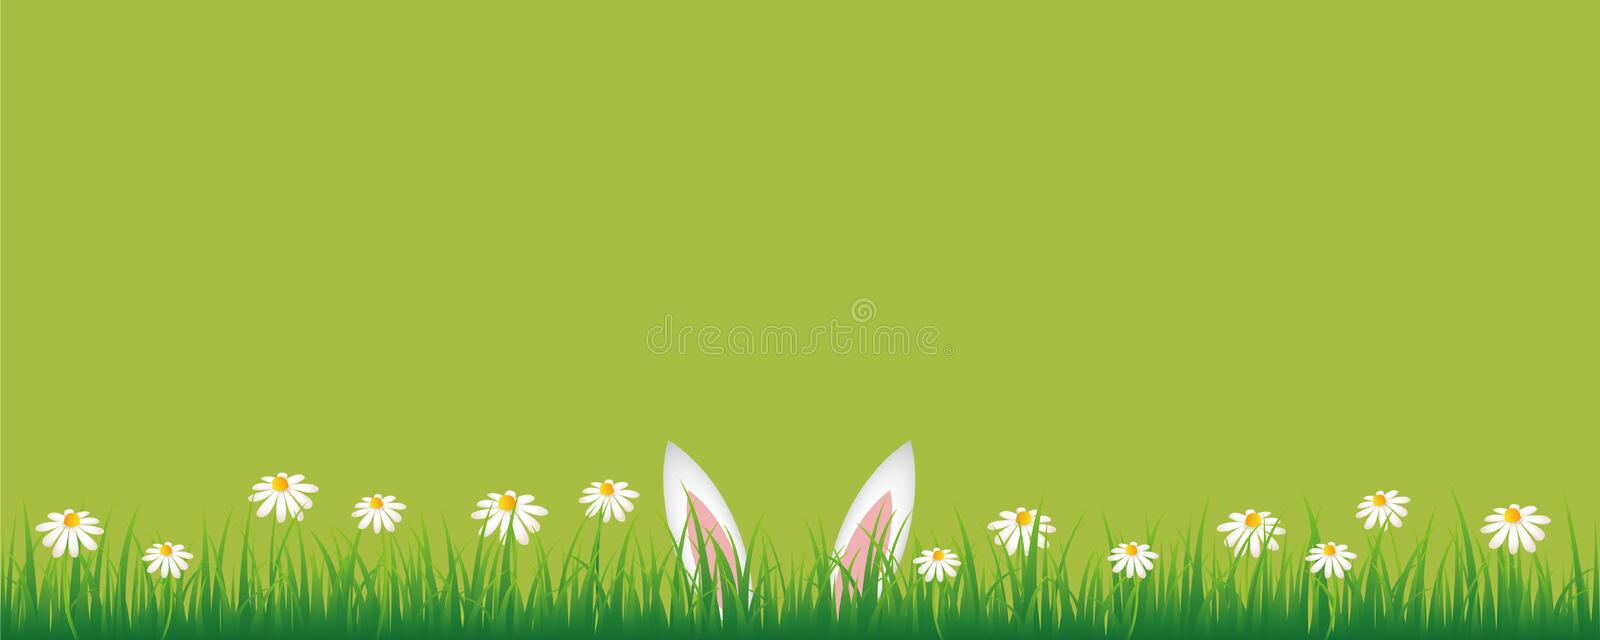 Bunny ears in green meadow with white daisy flowers green banner with copy space. Vector illustration EPS10 royalty free illustration